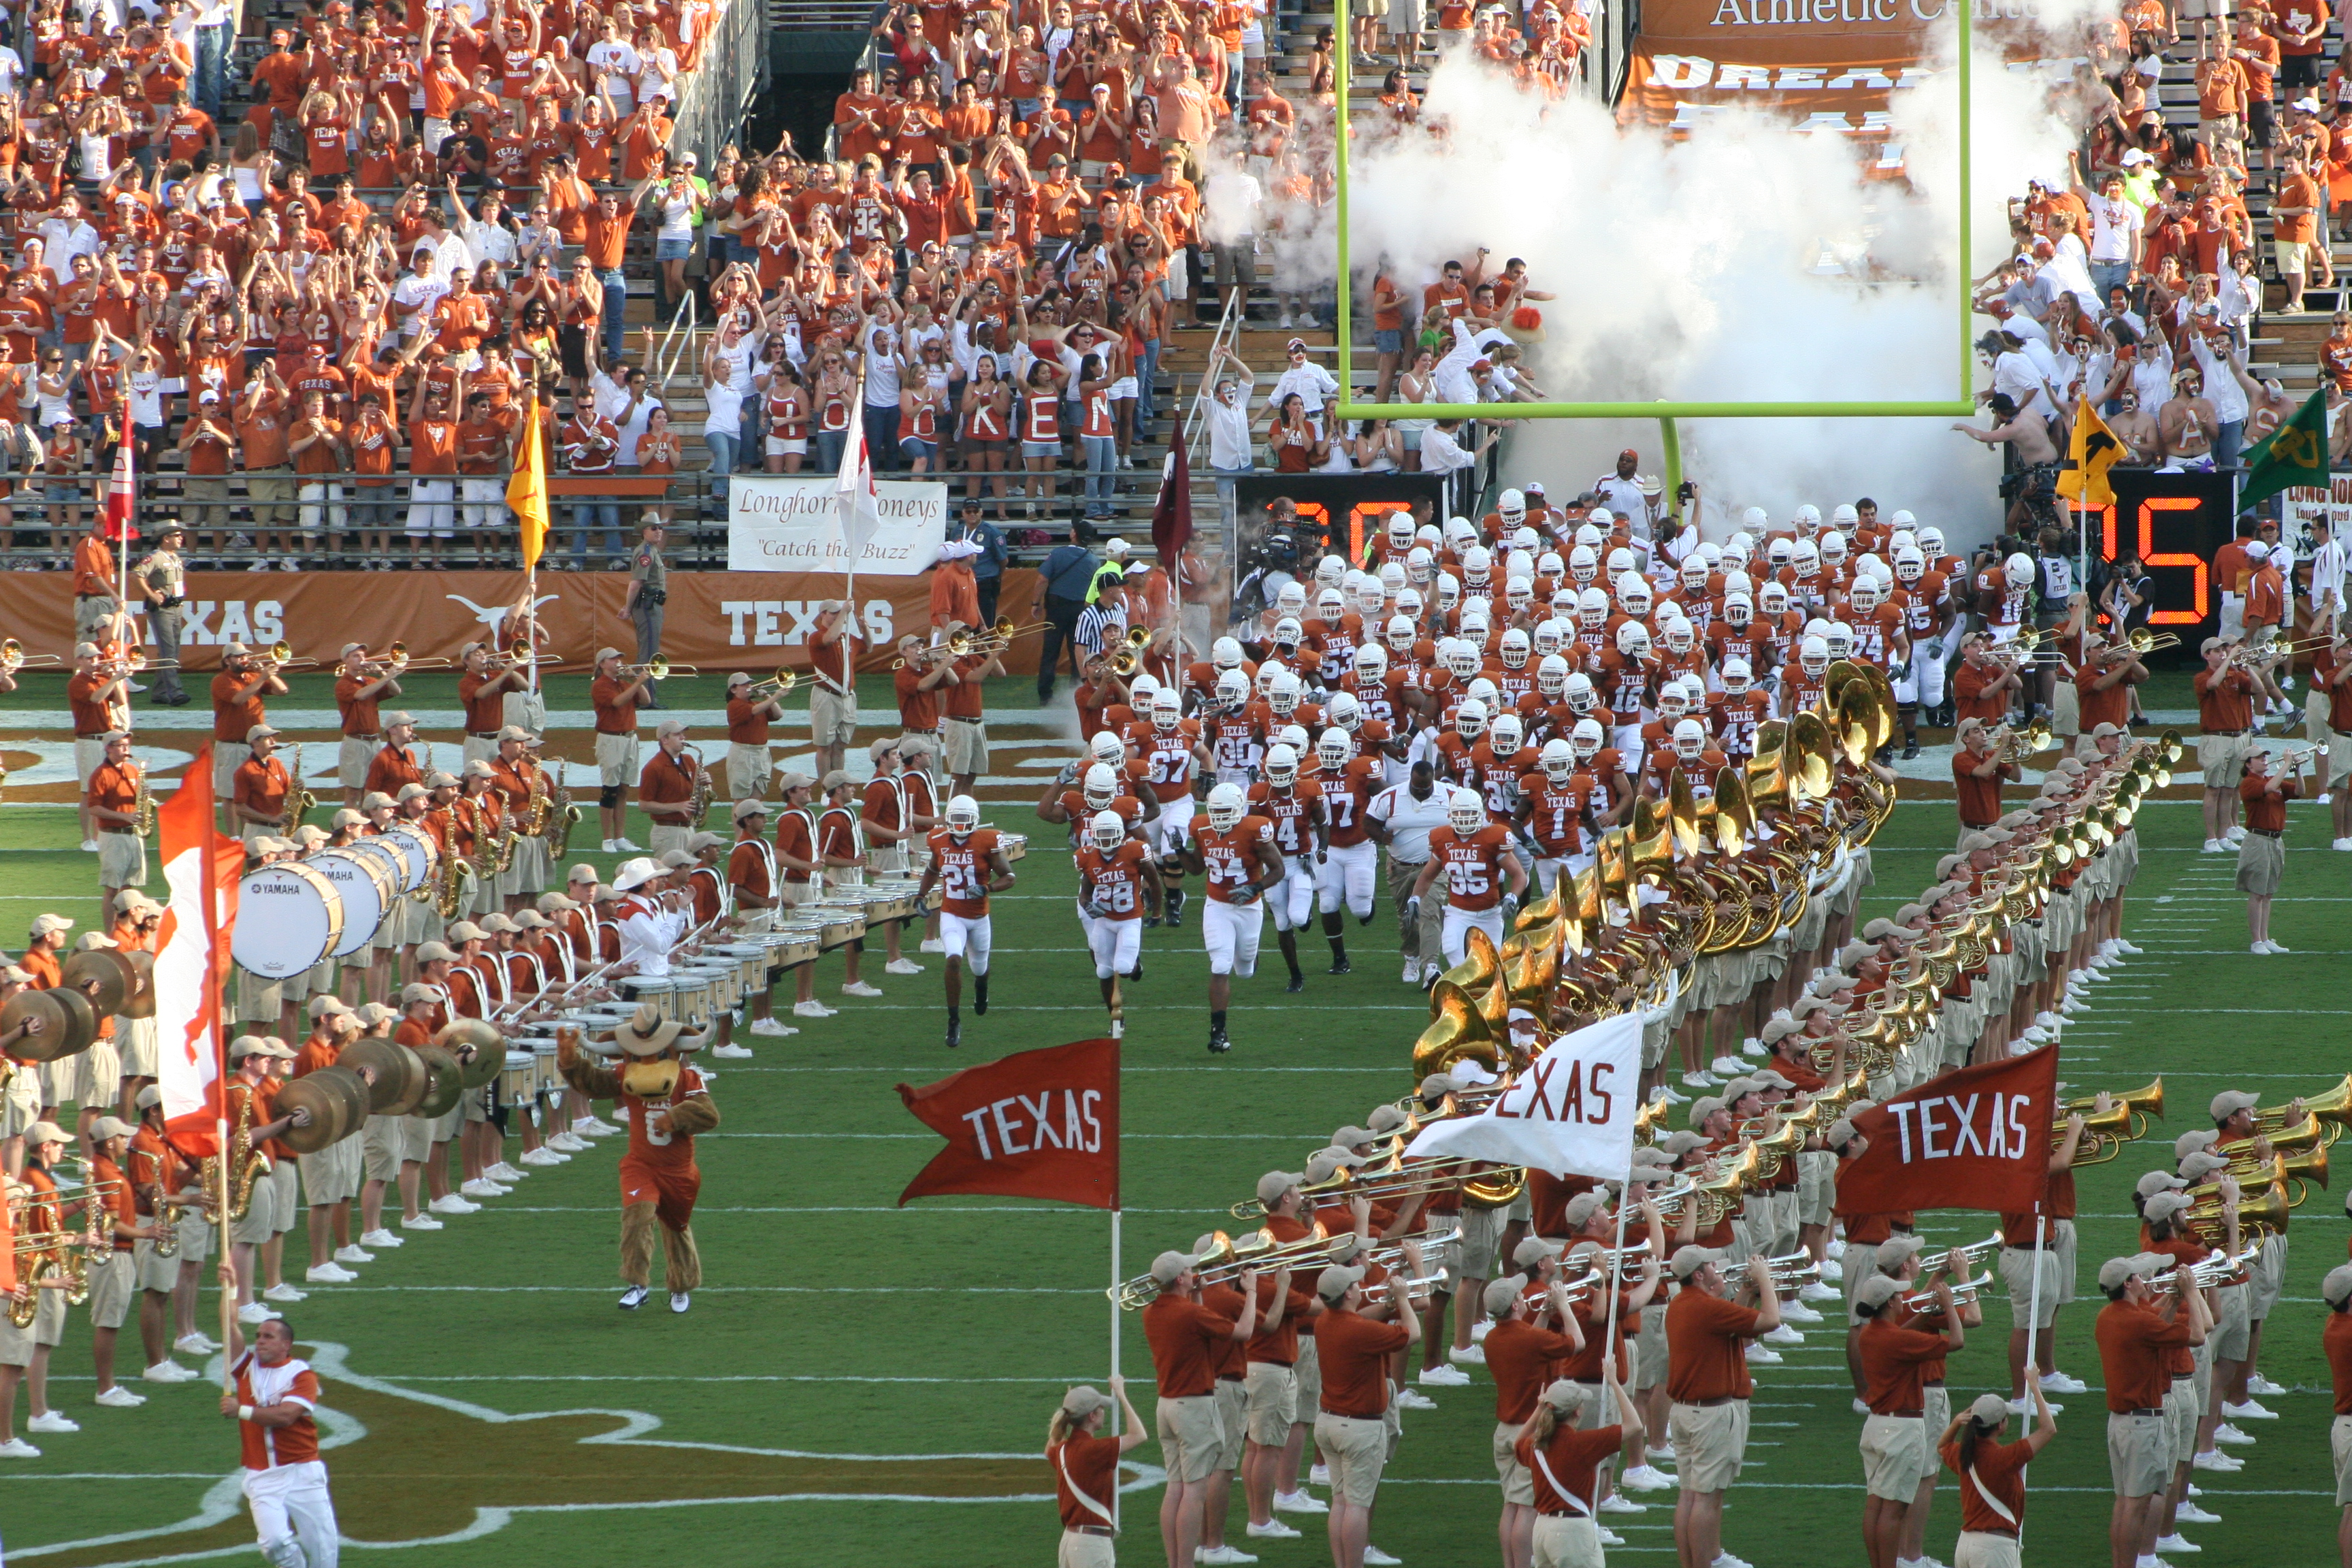 texas longhorns football longhorn football field texas longhorns 3456x2304